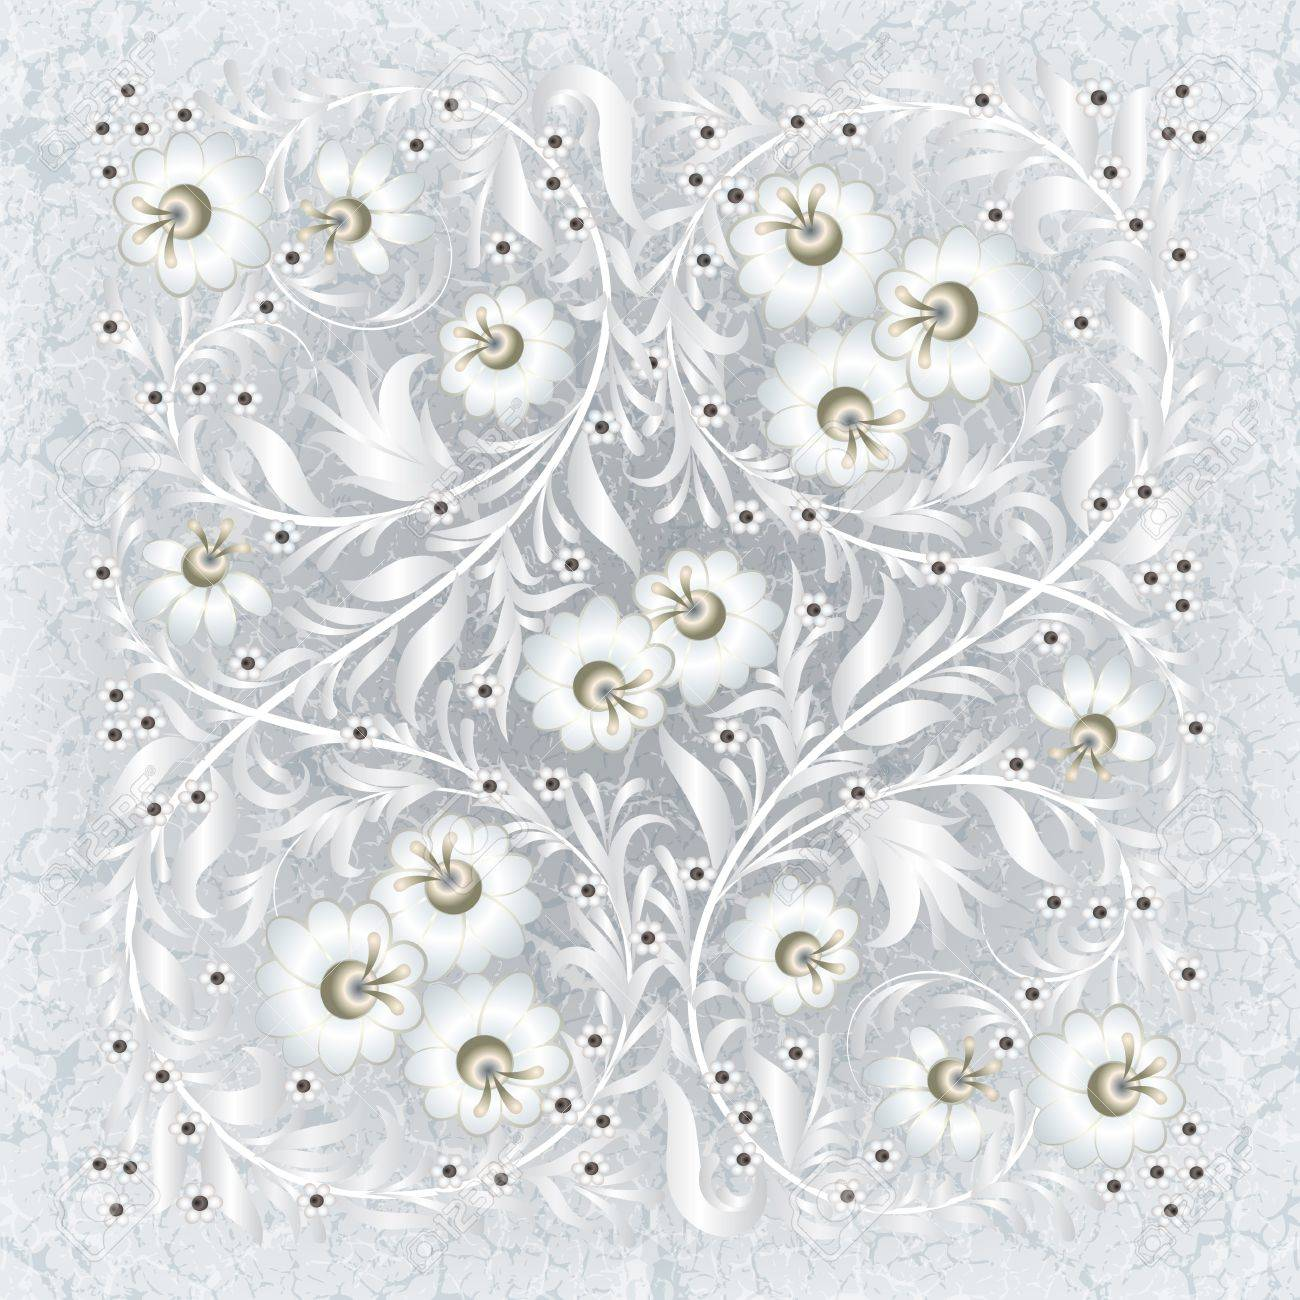 abctract floral ornament on white grunge background Stock Vector - 11449255